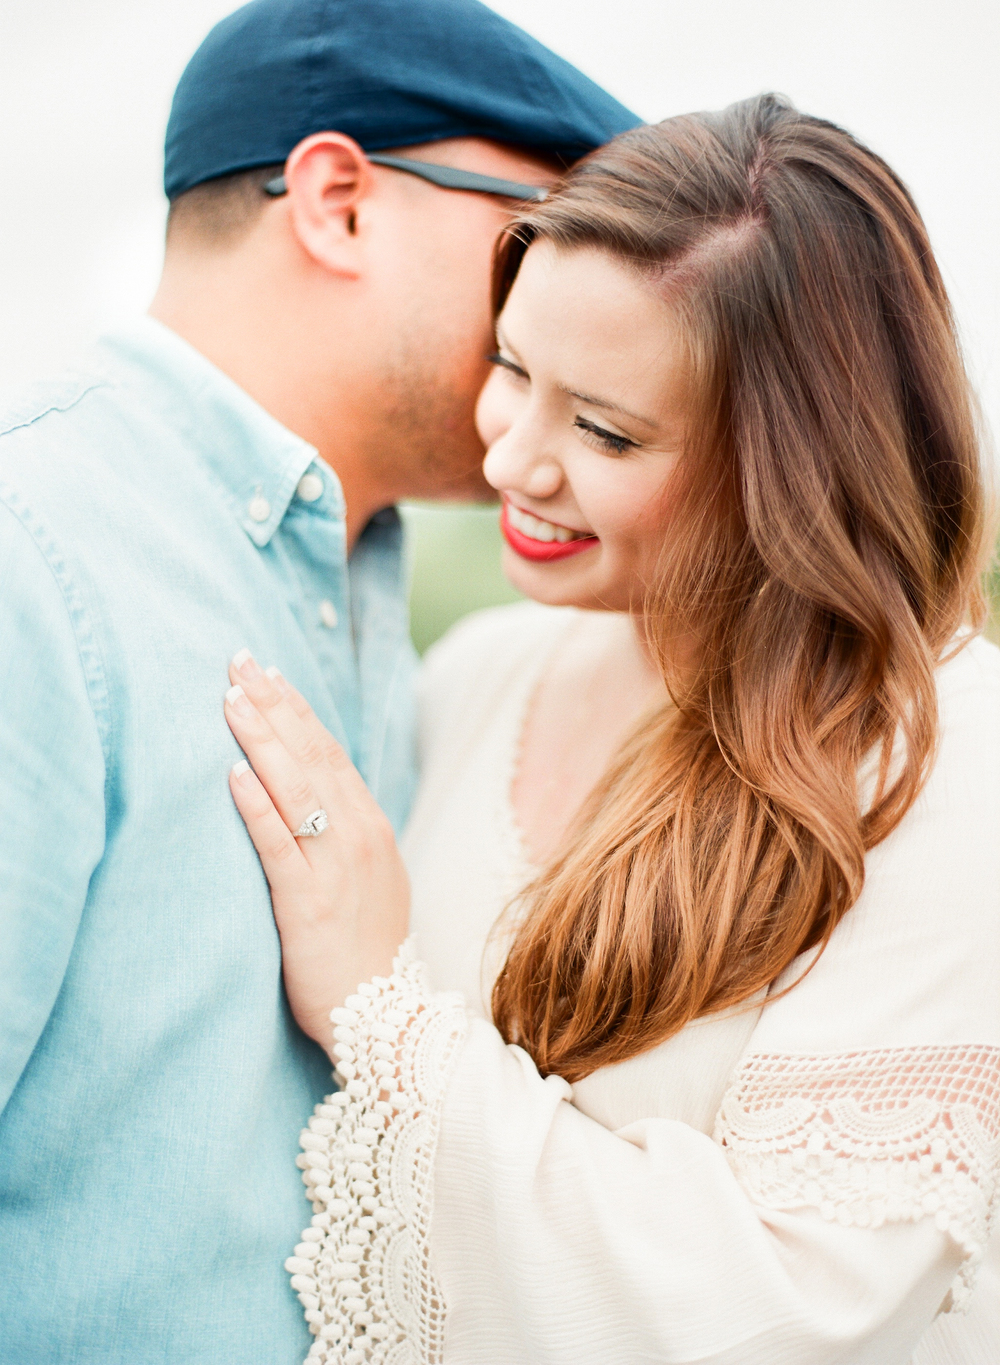 Austin-Texas-Engagement-Photographer-Kat-25.jpg